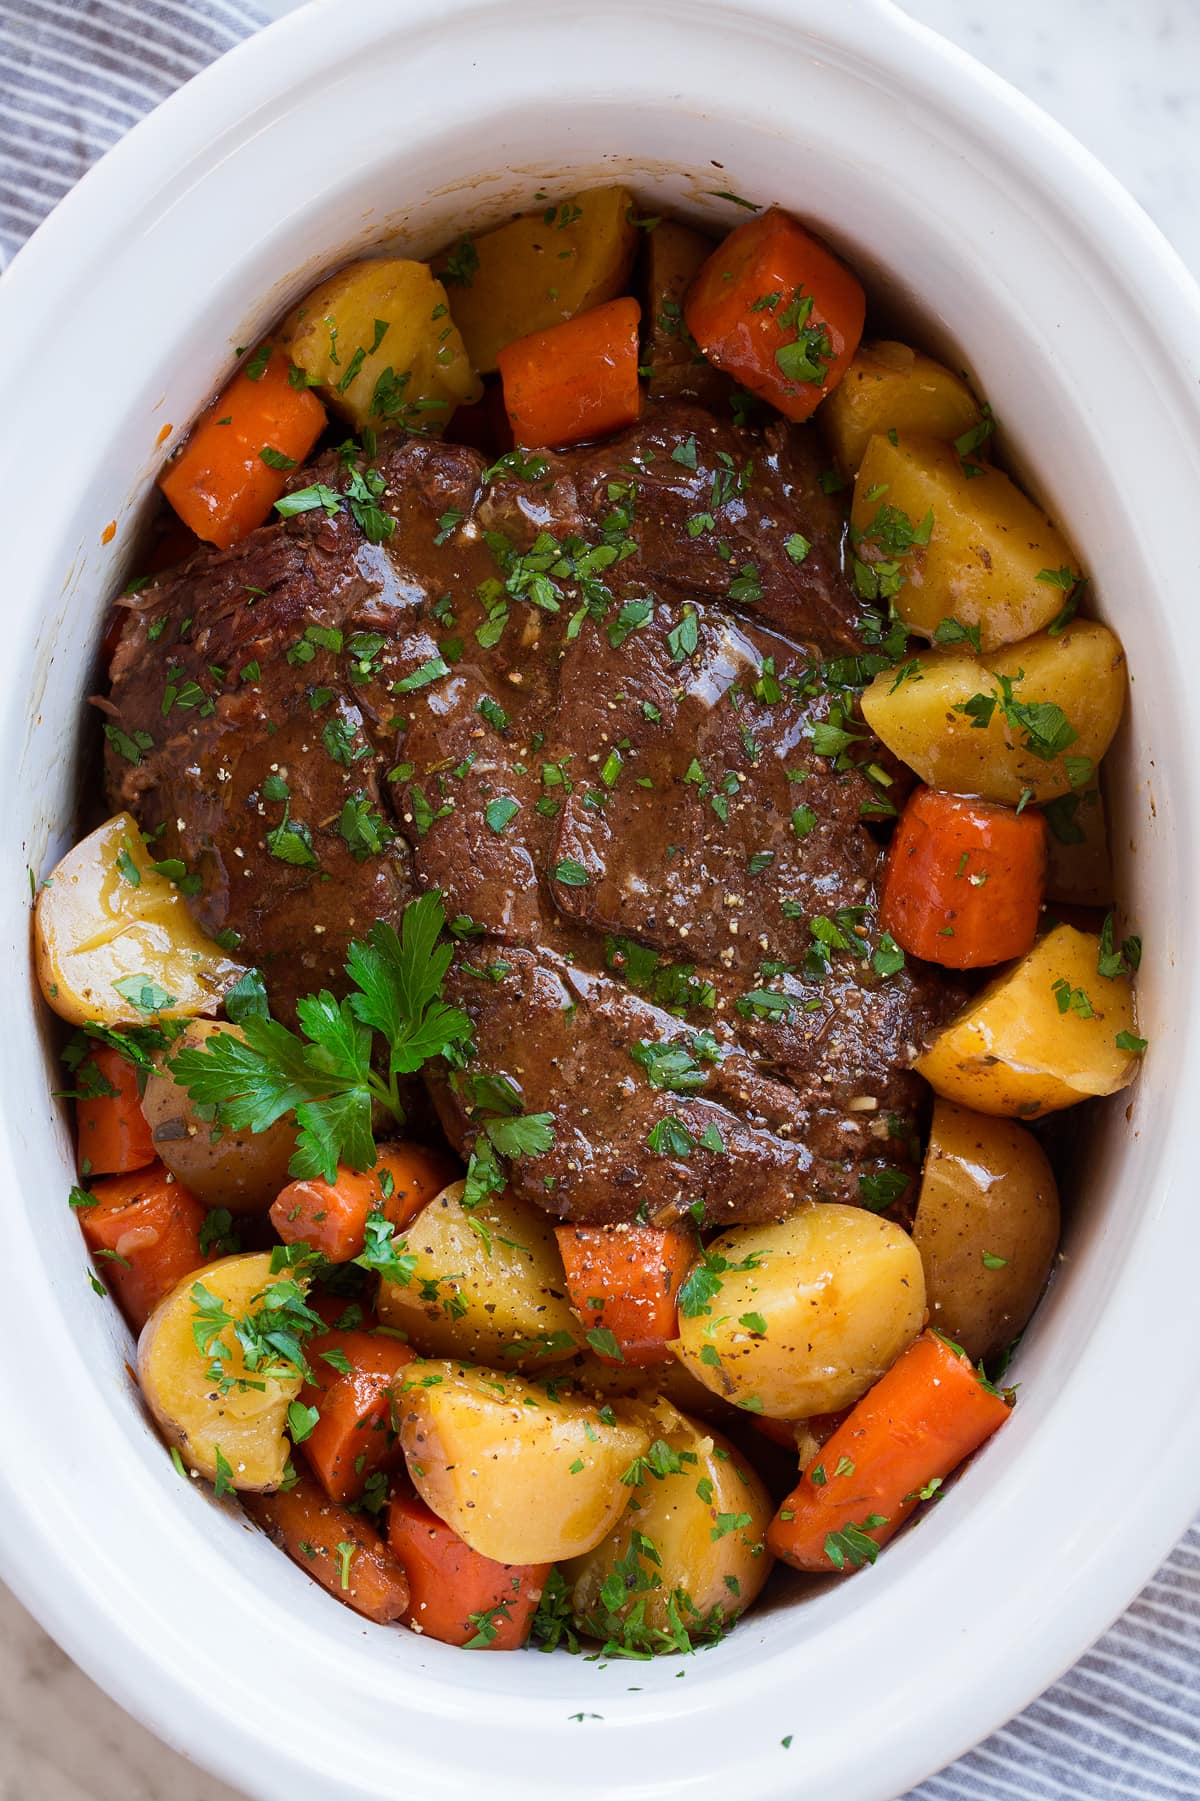 Slow cooker pot roast in a white crockpot